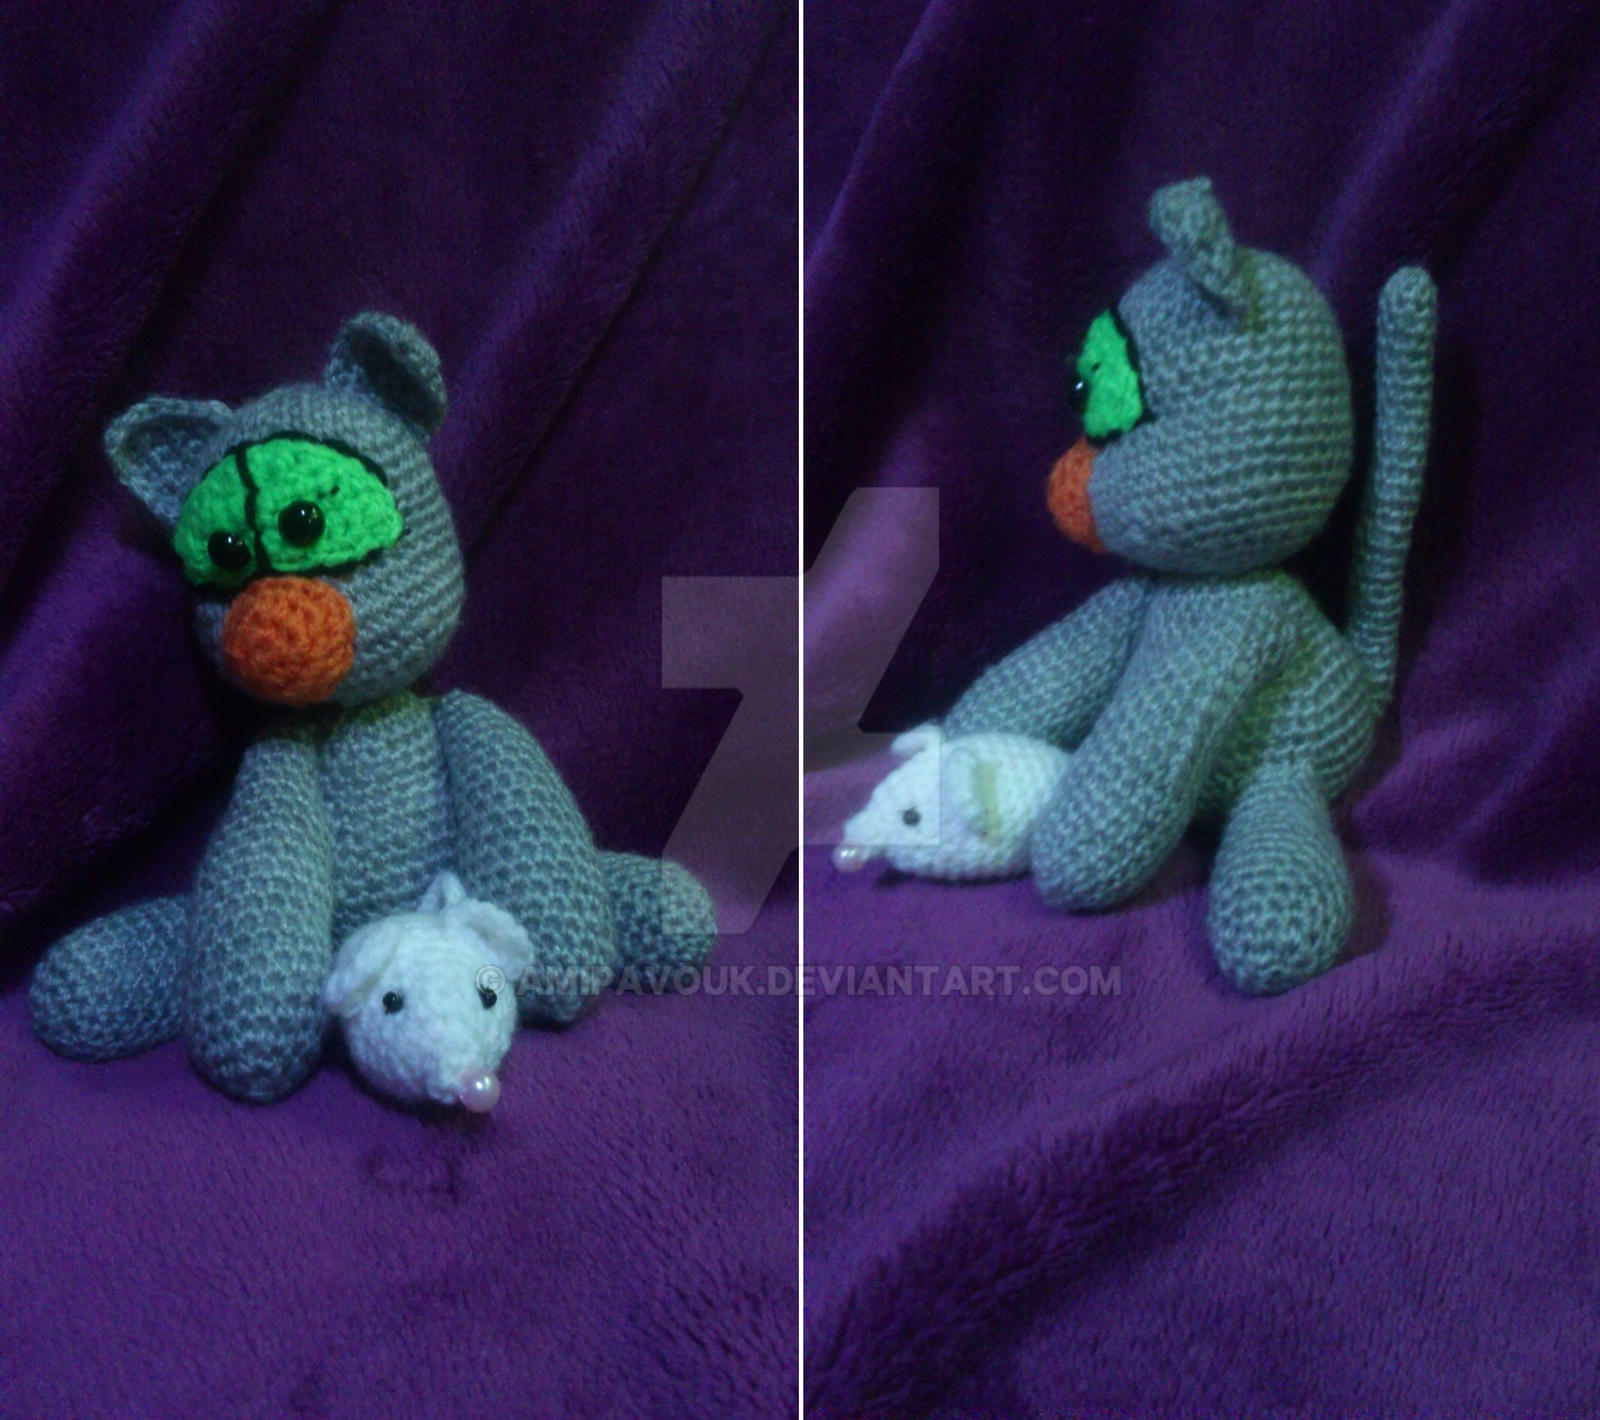 Amigurumi kitten with a mouse by AmiPavouk on DeviantArt